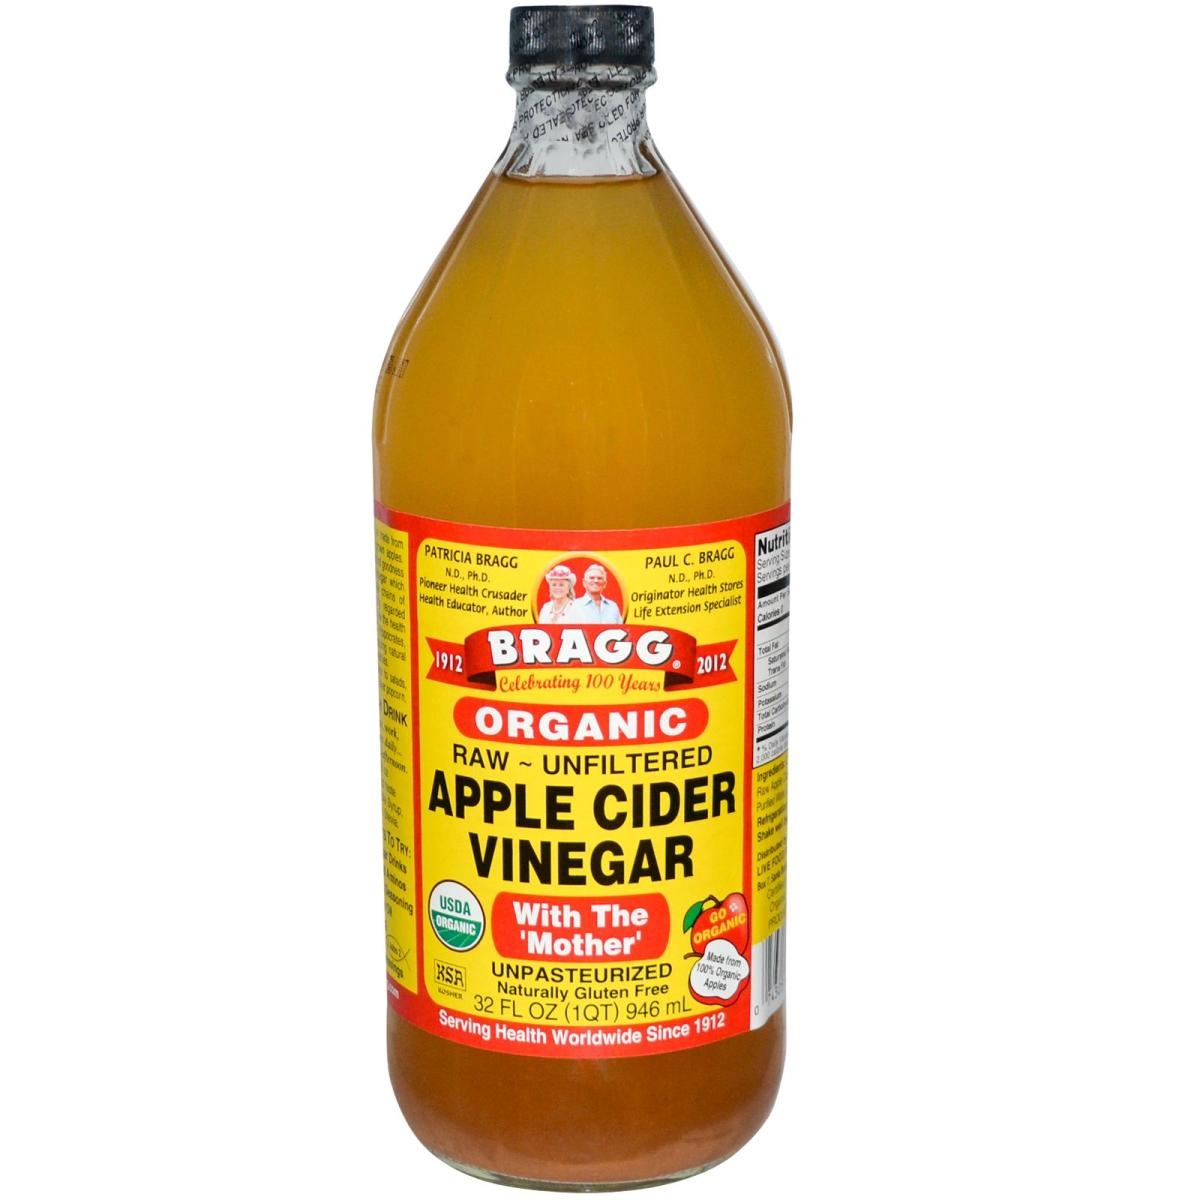 Apple cider vinegar is tummy-friendly